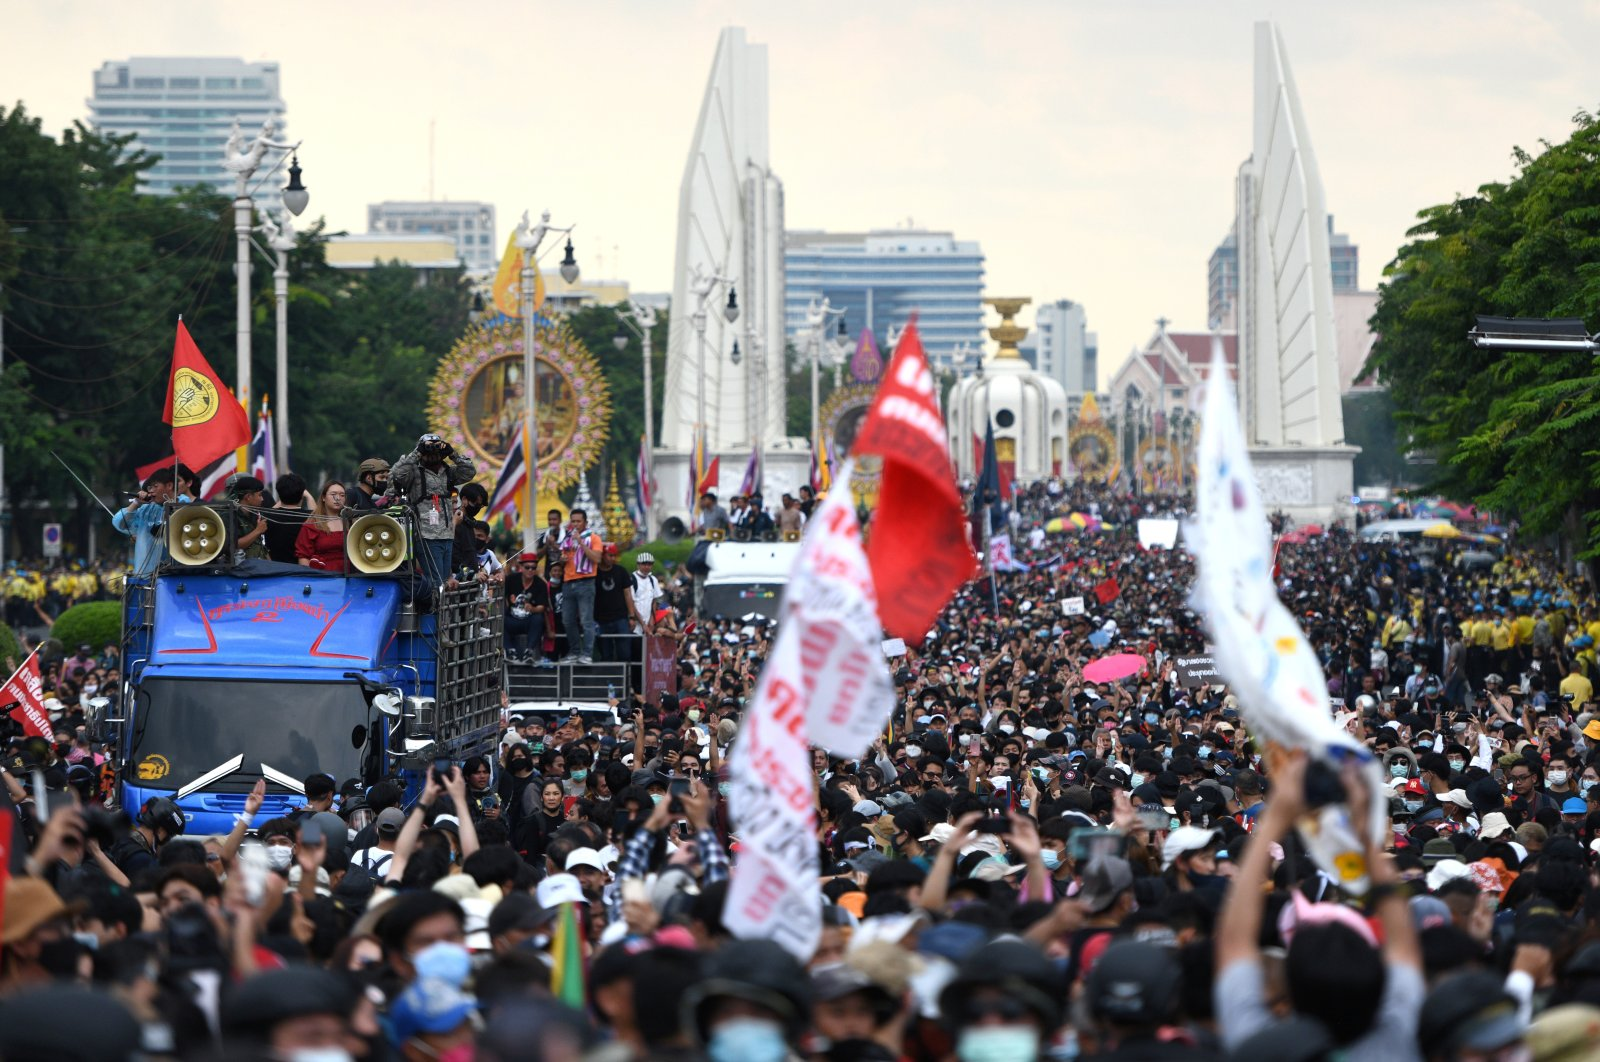 Pro-democracy demonstrators march during a Thai anti-government mass protest, on the 47th anniversary of the 1973 student uprising, in Bangkok, Thailand, Oct. 14, 2020. (Reuters Photo)